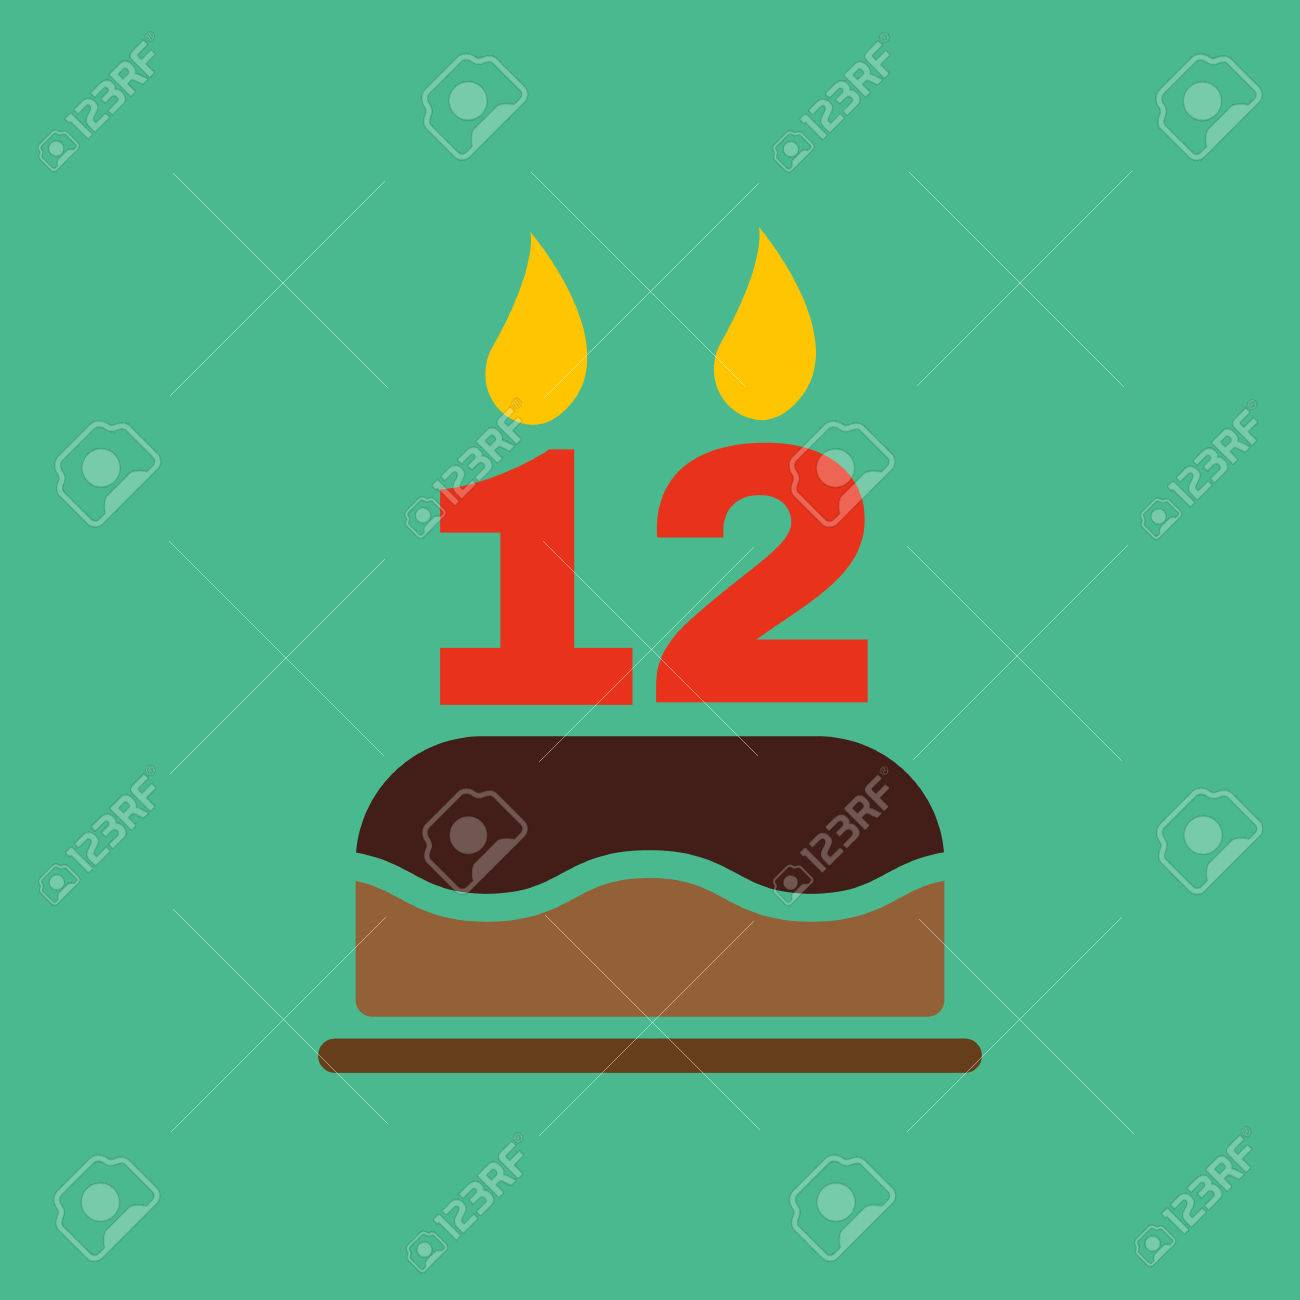 The Birthday Cake With Candles In The Form Of Number 12 Icon